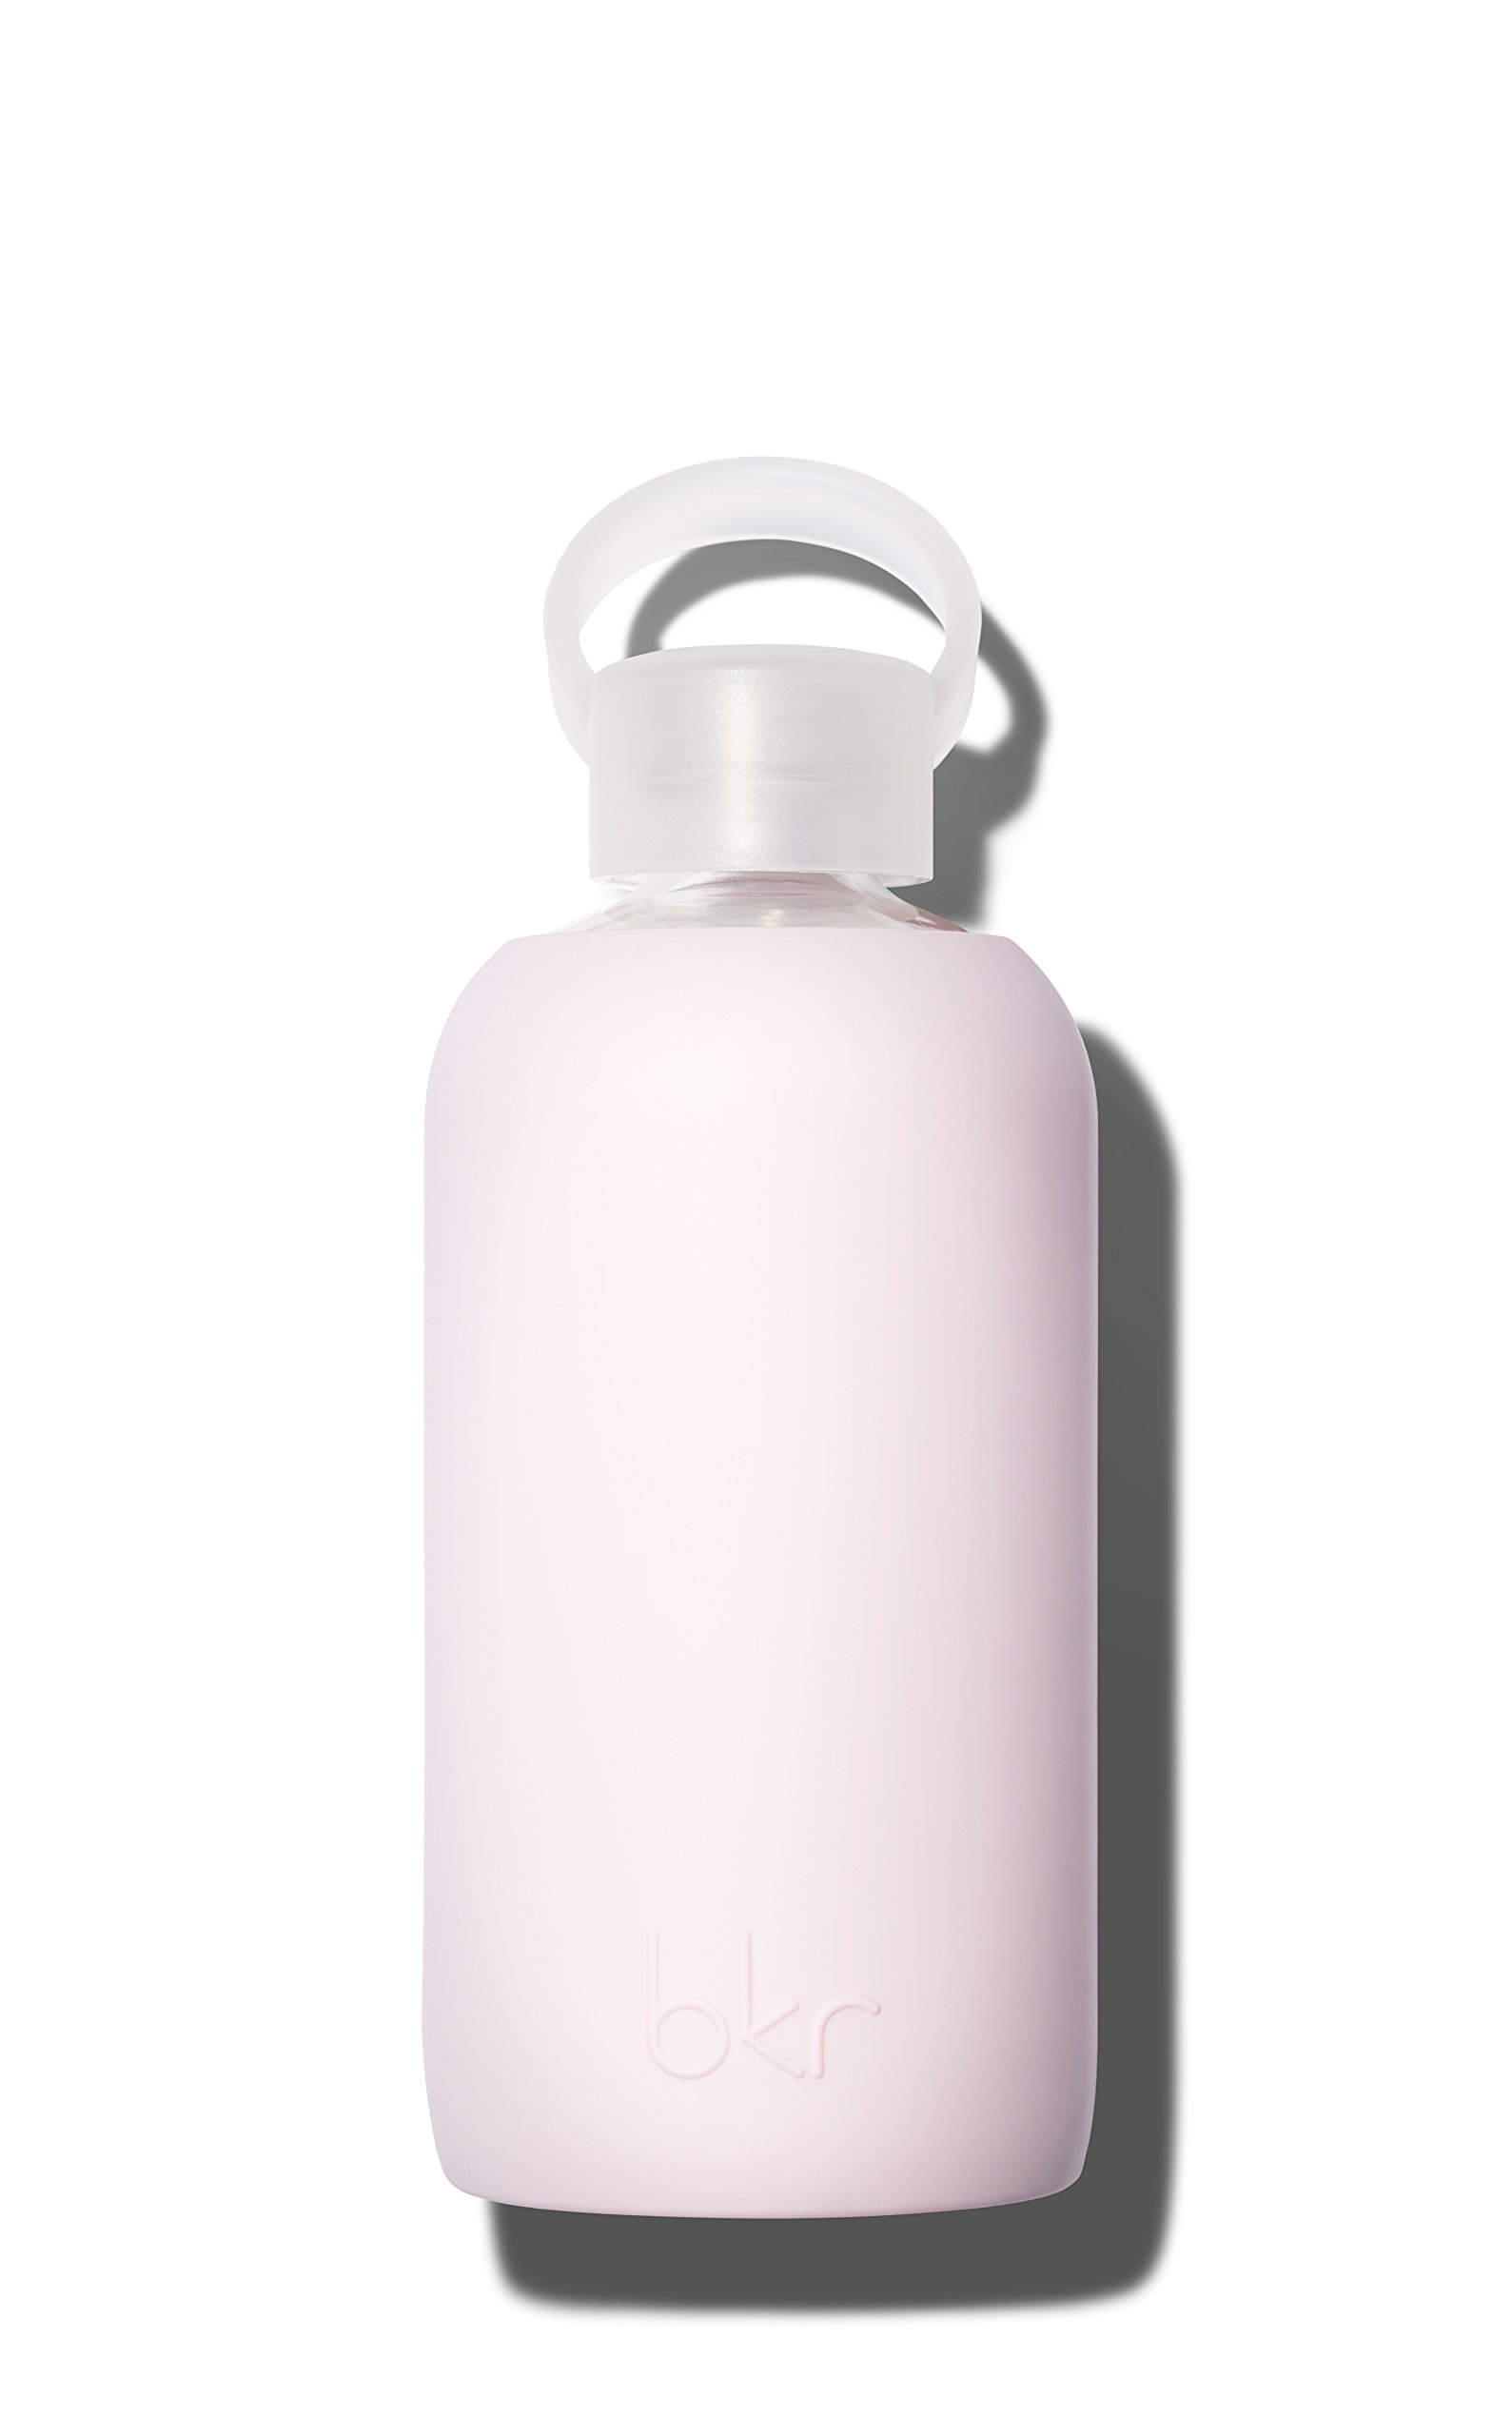 bkr Air Kiss Glass Water Bottle with Smooth Silicone Sleeve for Travel, Narrow Mouth, BPA-Free & Dishwasher Safe, Opaque Socialite Sweetheart Pink, 16 Ounce